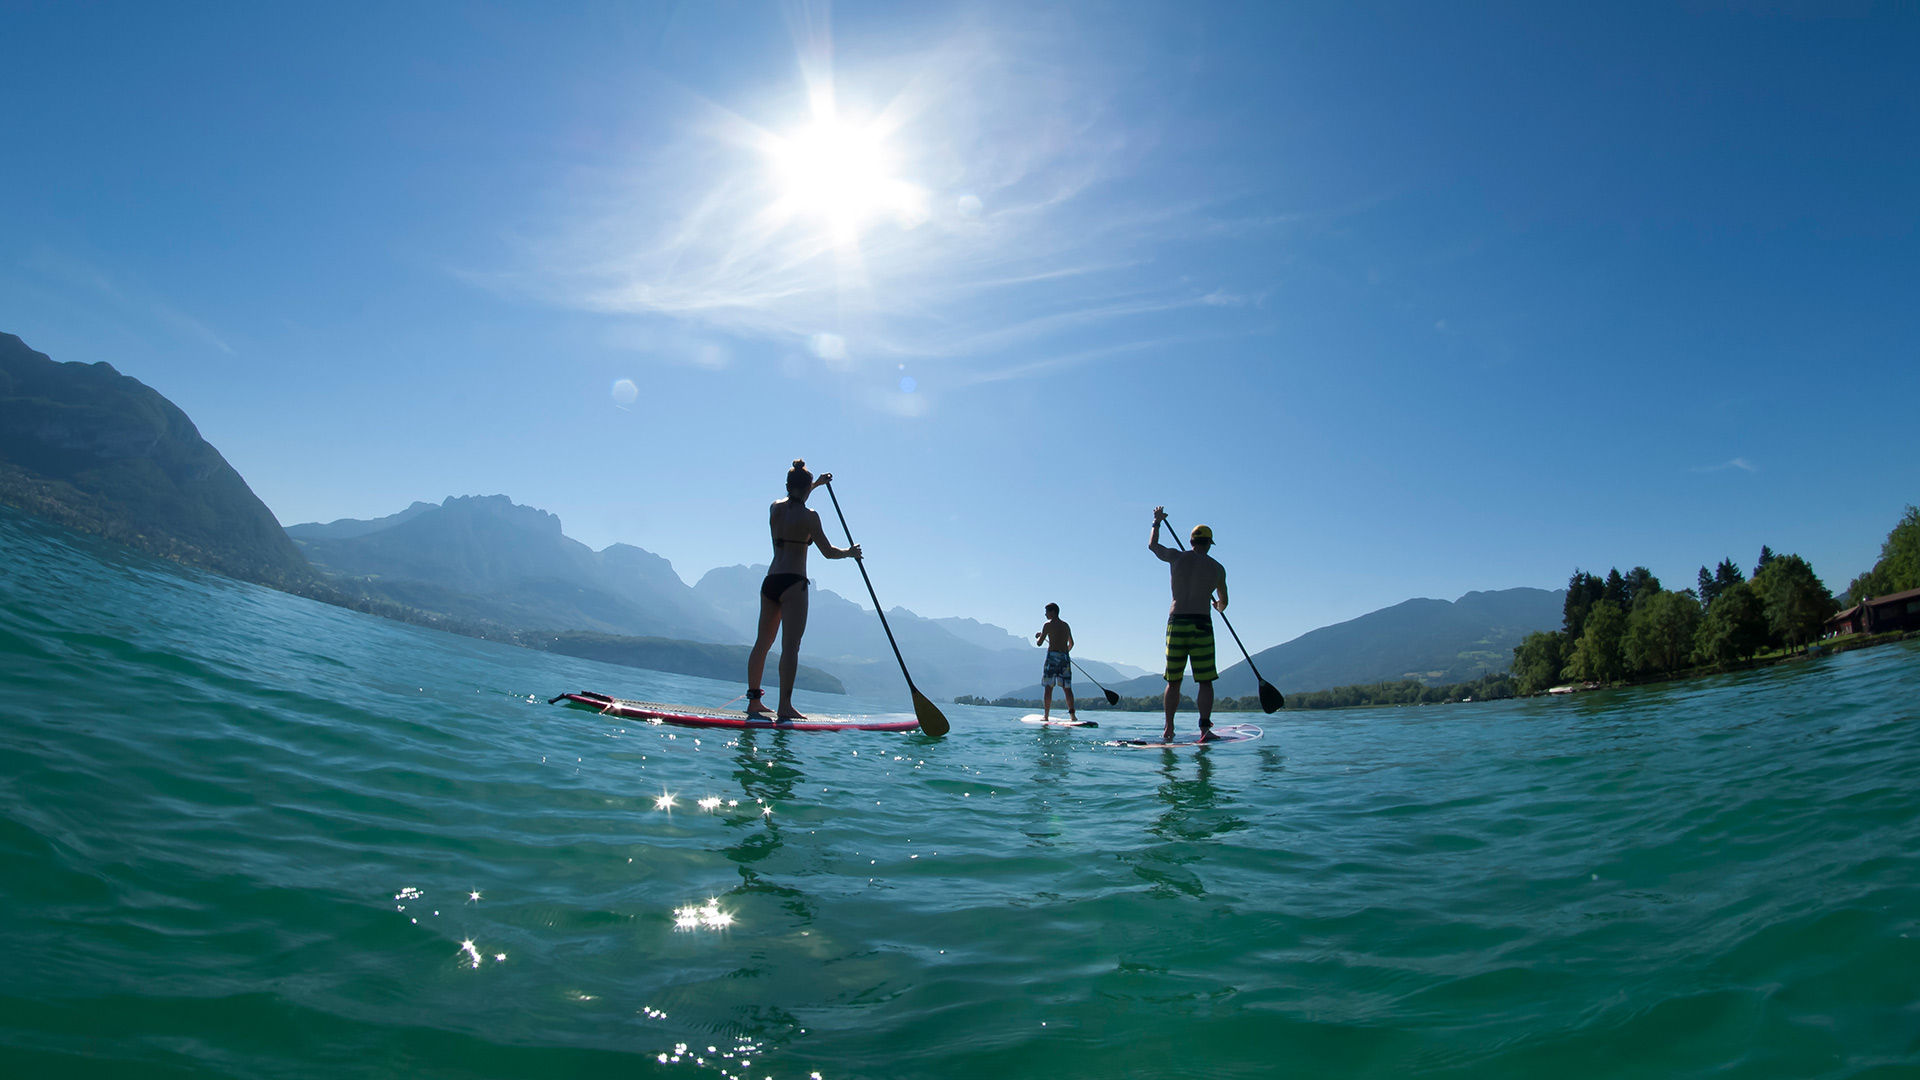 lac-annecy-paddle-semaphore-p-leroy-145942